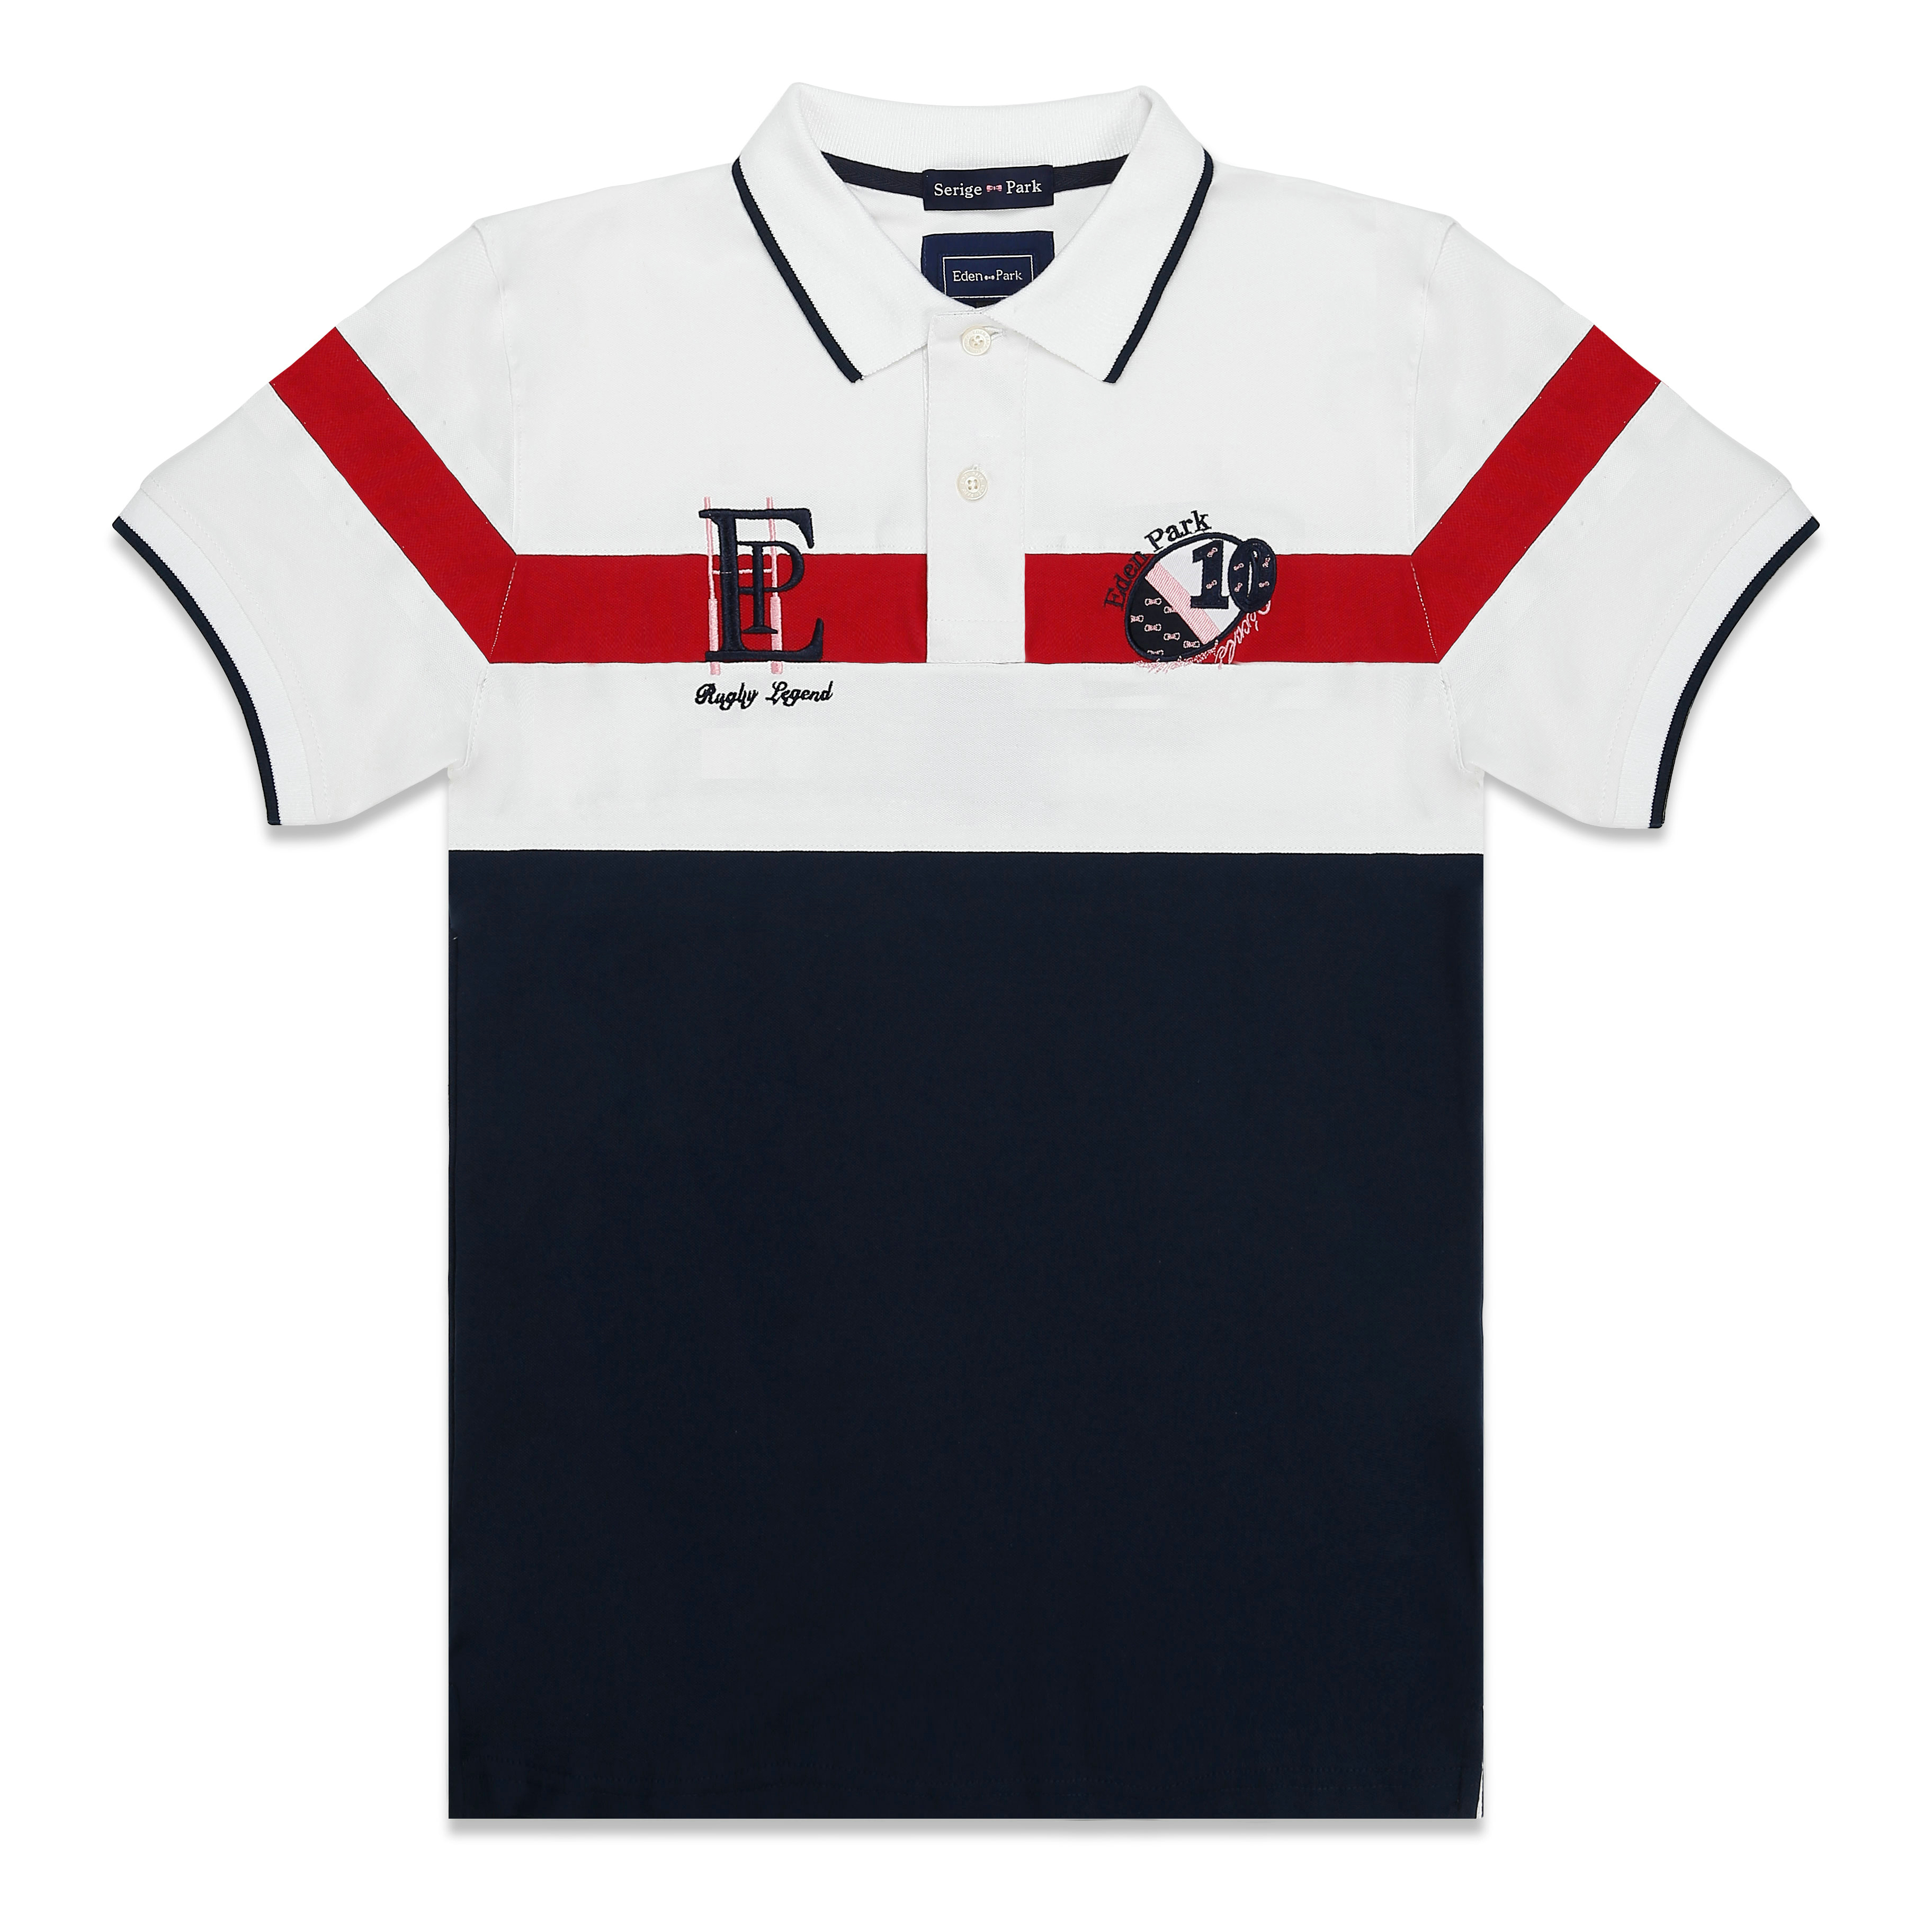 2019 FASHION PATTERN NEW MAN   POLO   SHIRT SHORT SLEEVE WITH HIGH QUALITY MATERIAL SERIGE EDEN PARK WITH SUPERIOR COTTON MATERIAL